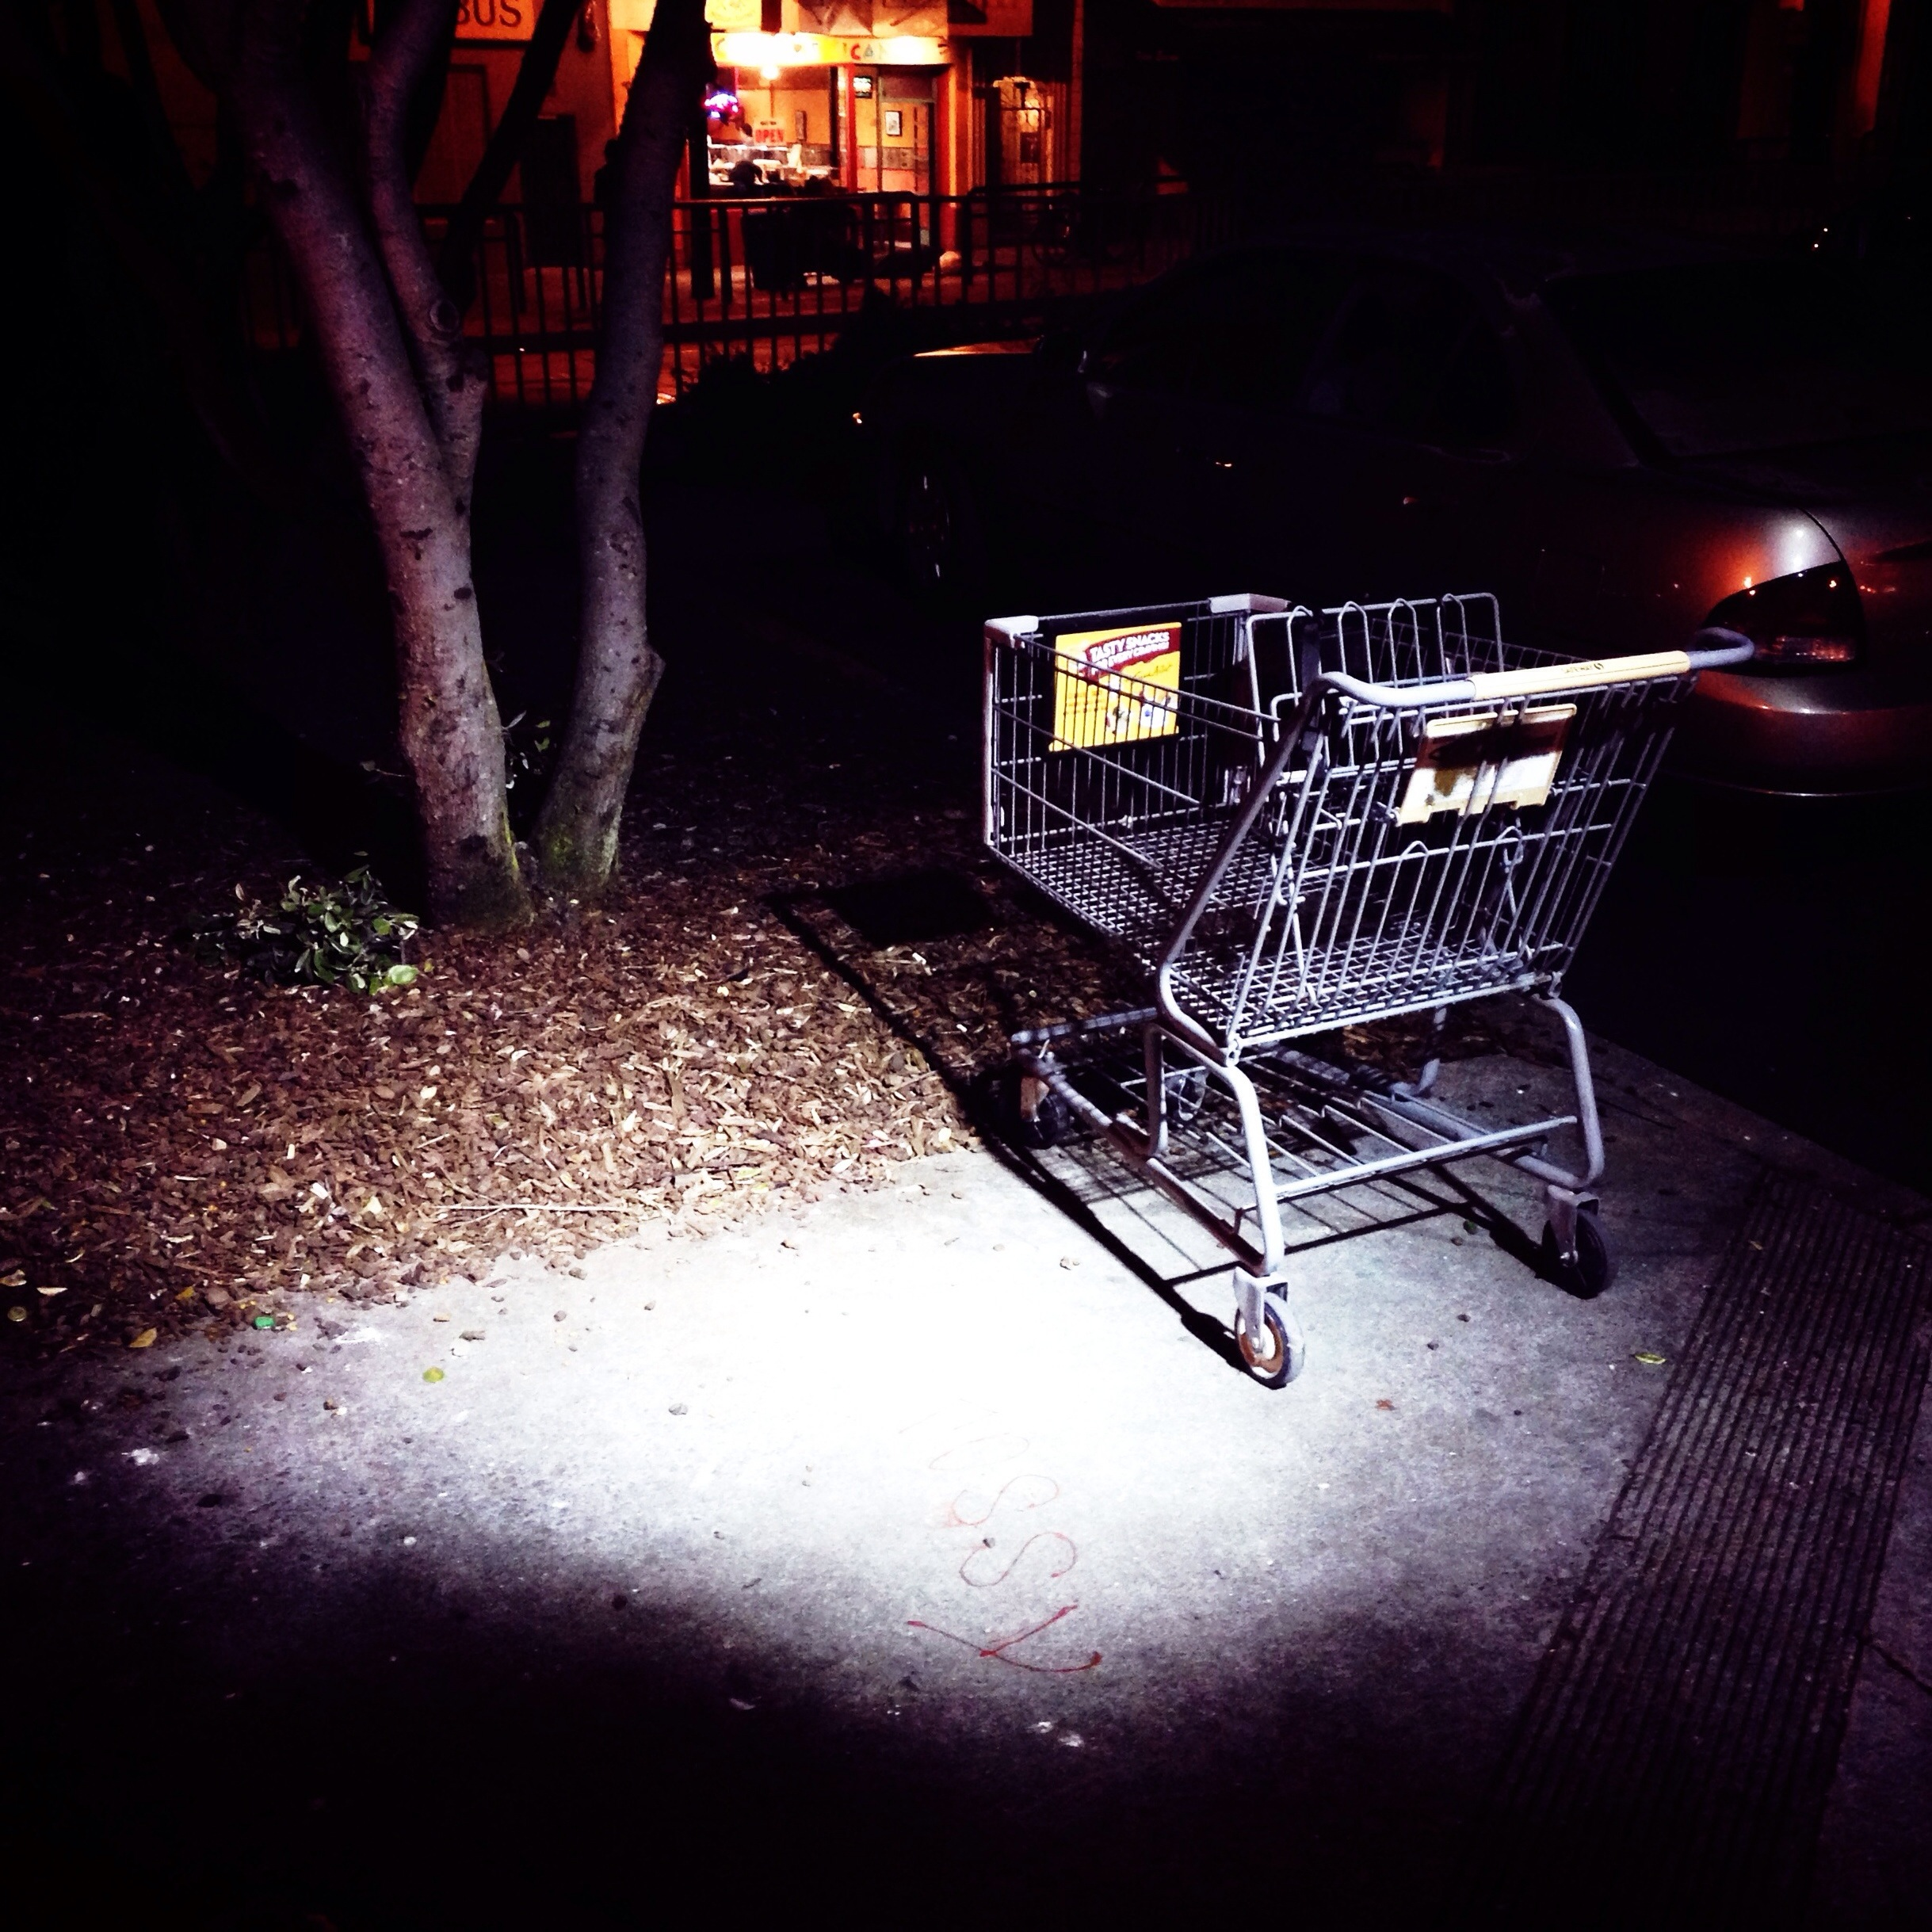 Shopping cart abandonment is cruel - here's how to stop it